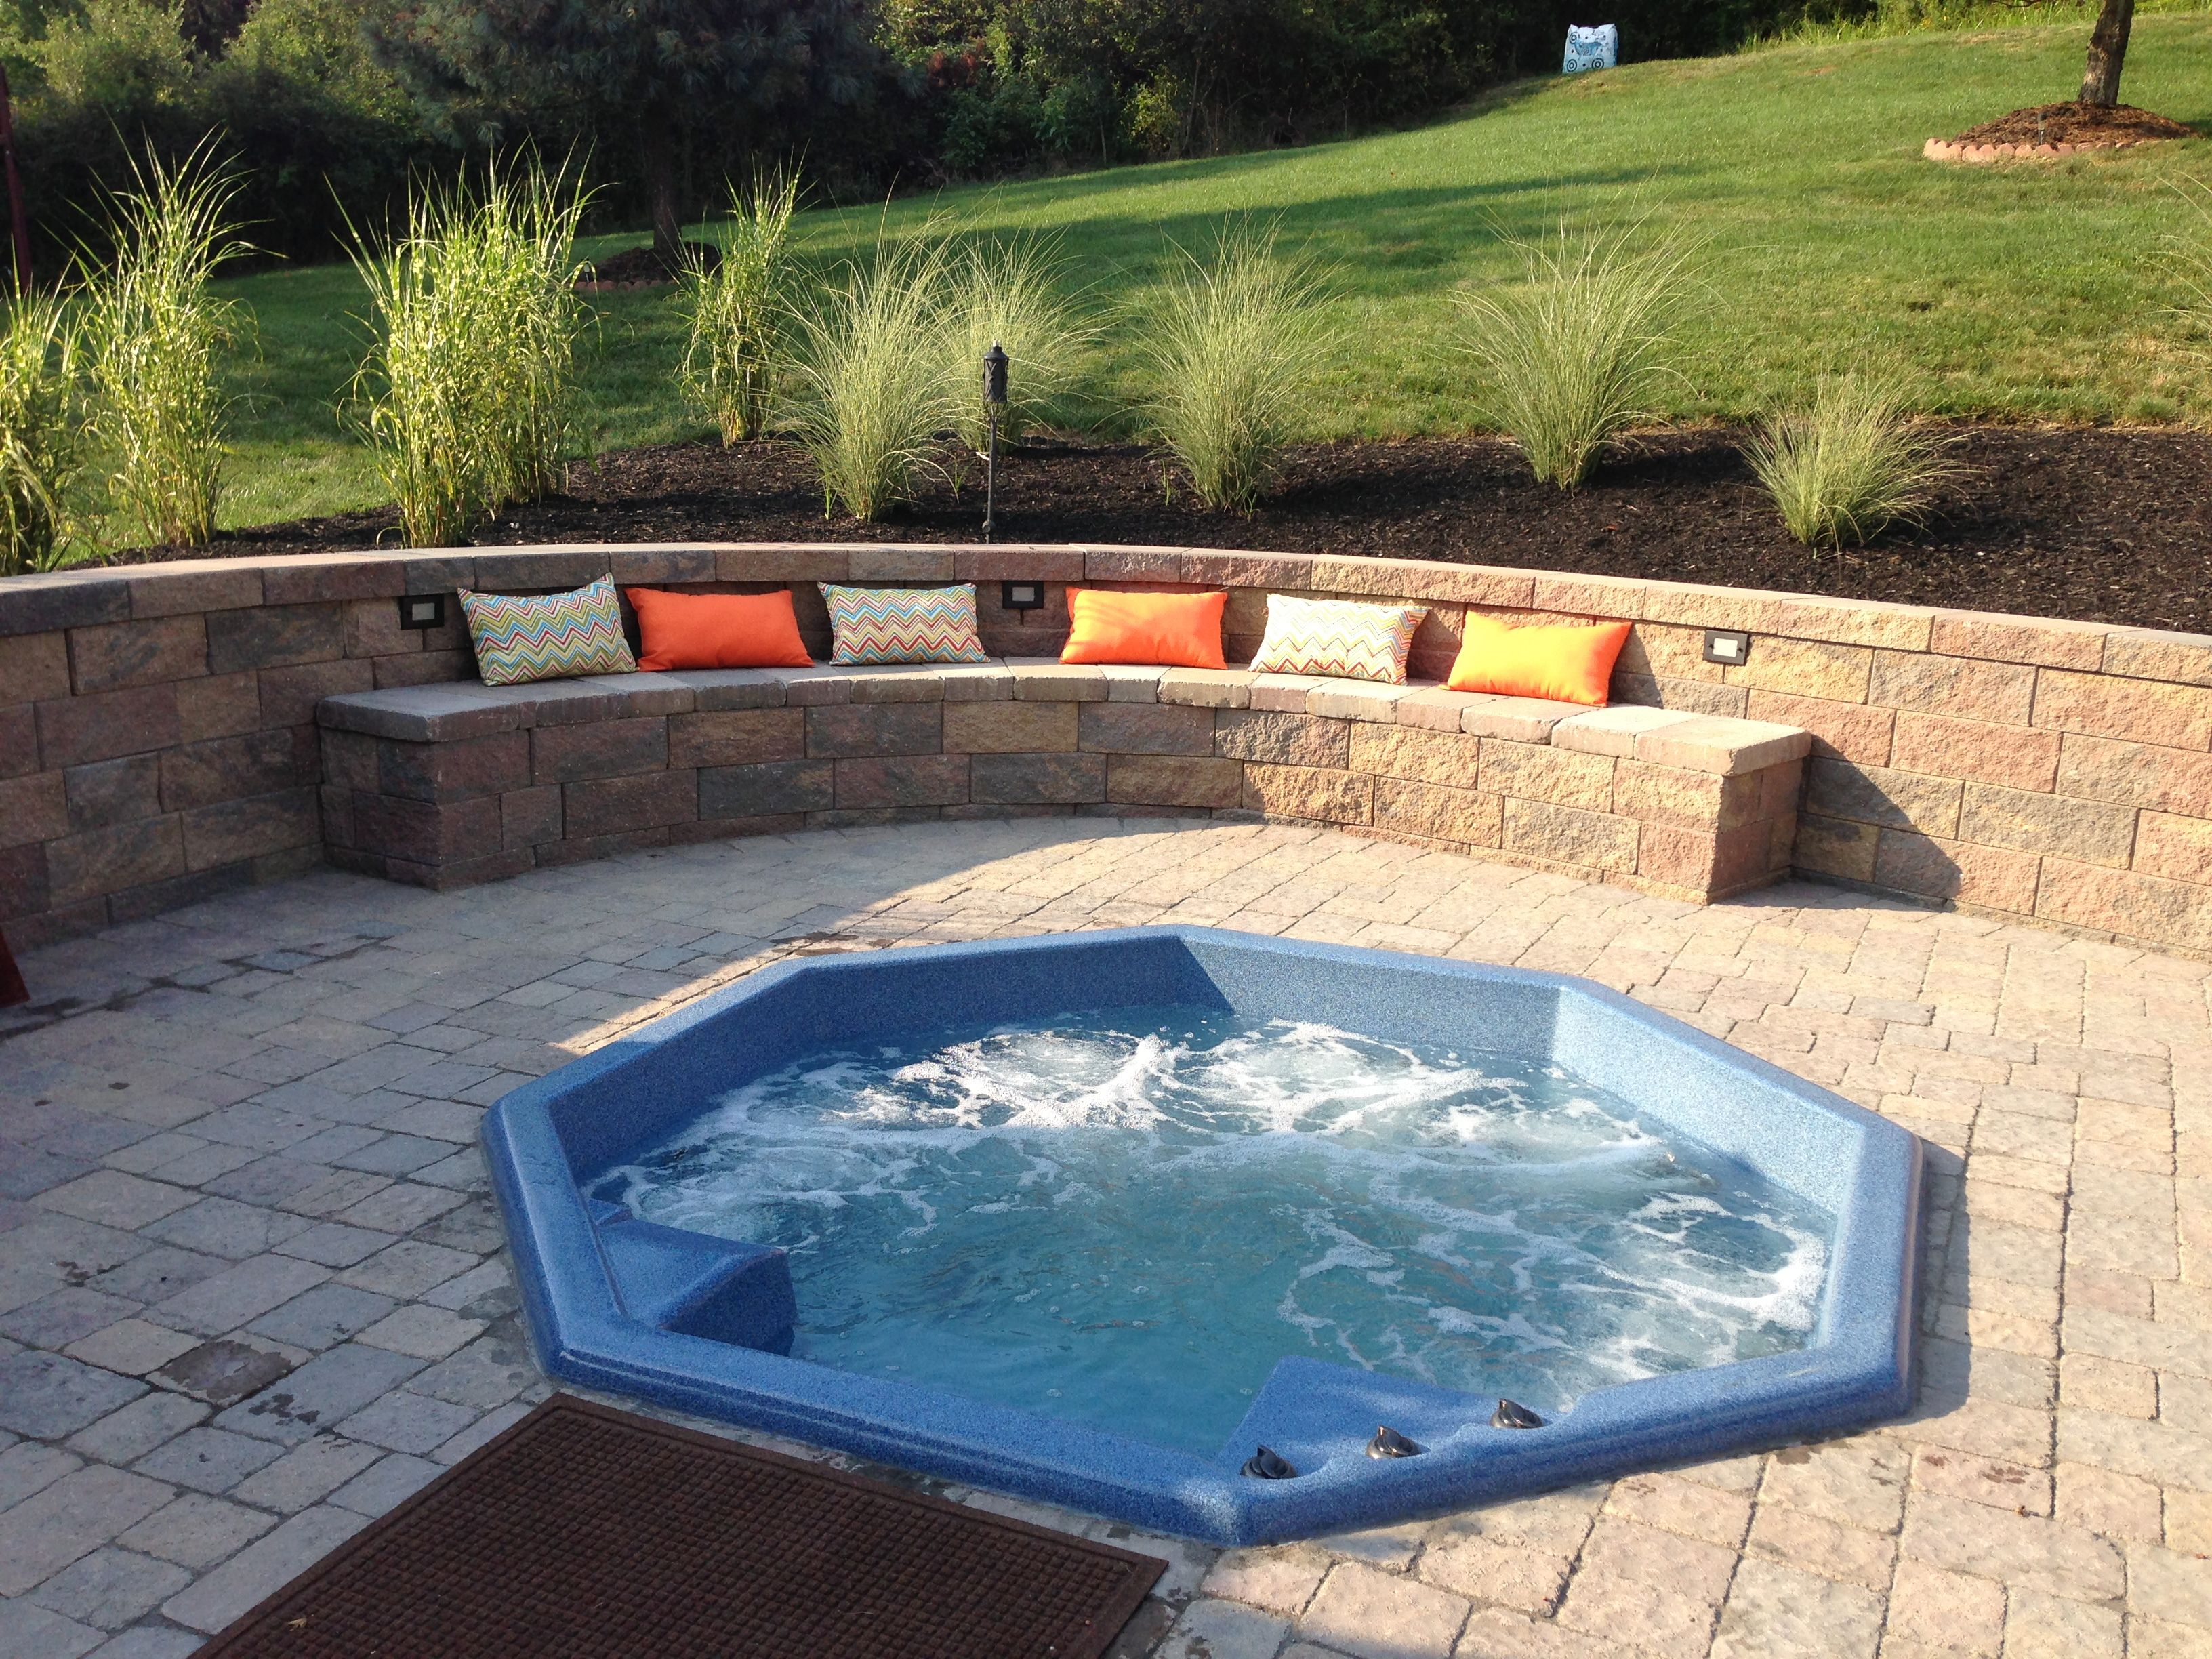 backyard entertaining area sunken hot tub jacuzzi with built in seating and retaining wall. Black Bedroom Furniture Sets. Home Design Ideas